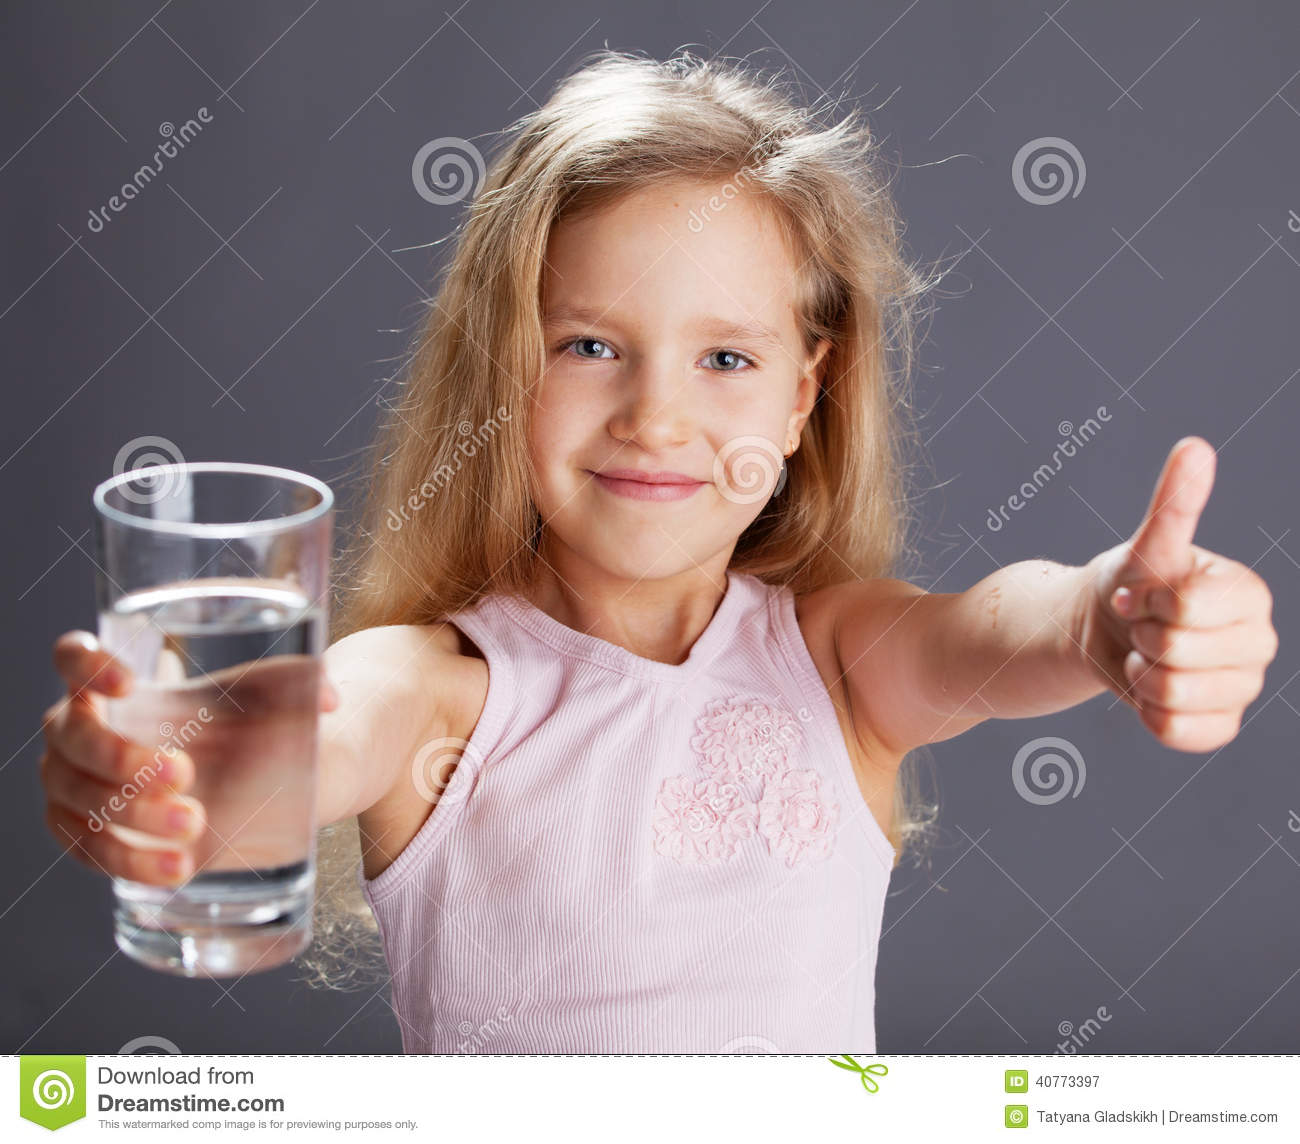 Kid drinking water from glass